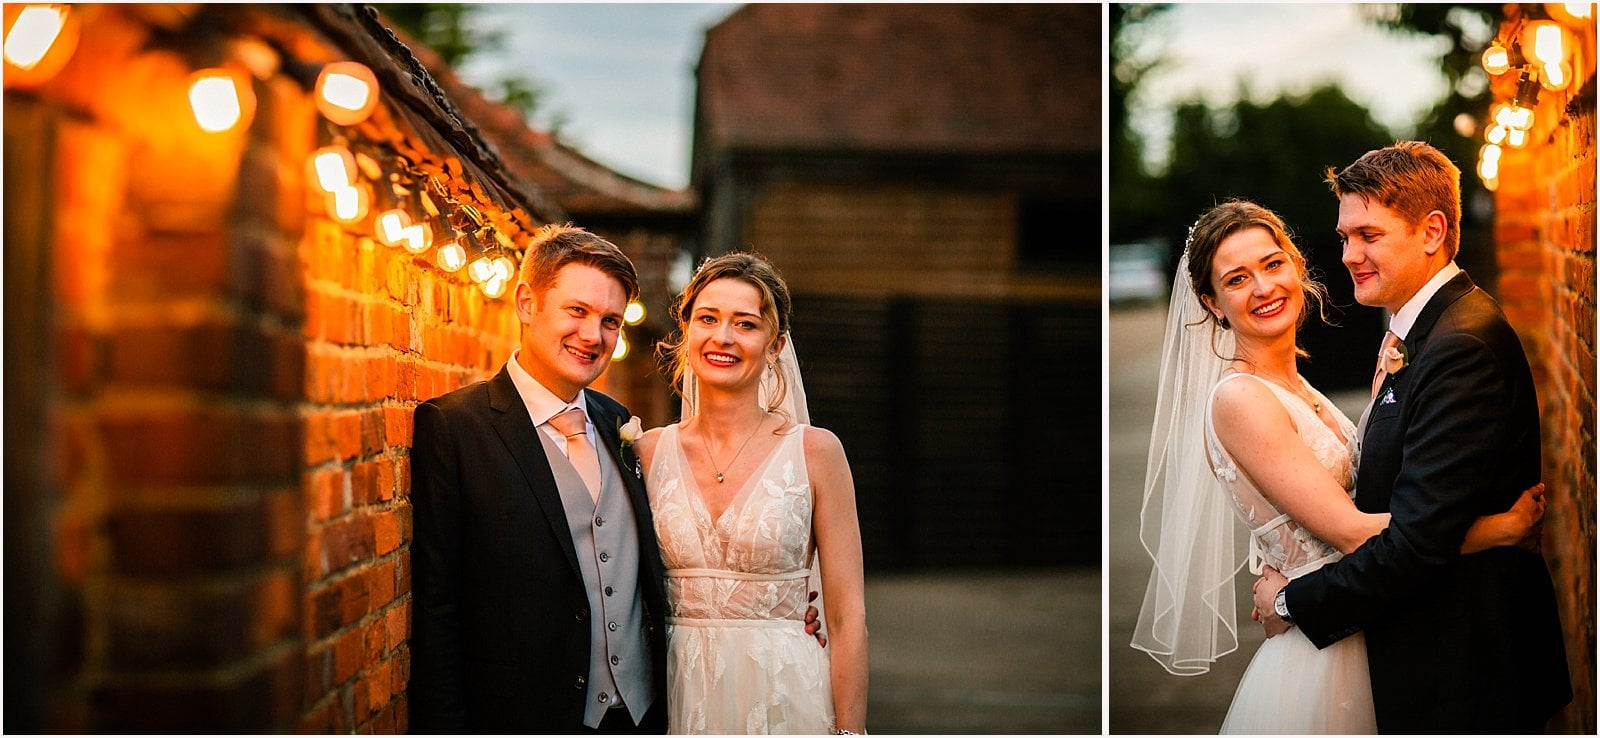 Beautiful Lillibrooke Manor Wedding - Ksenia & Iain 40